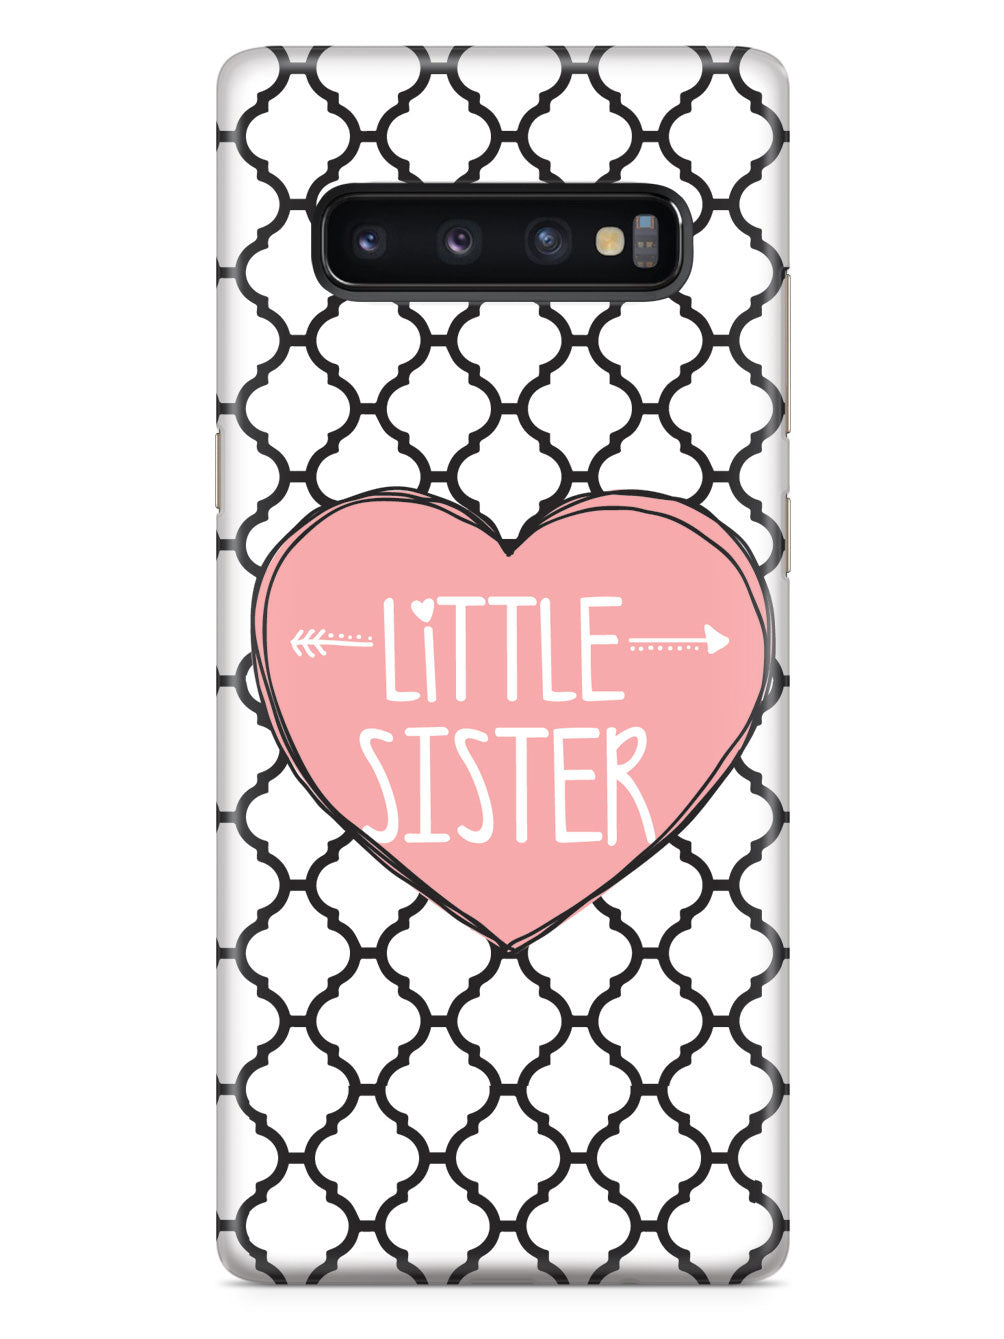 Sisterly Love - Little Sister - Moroccan Case